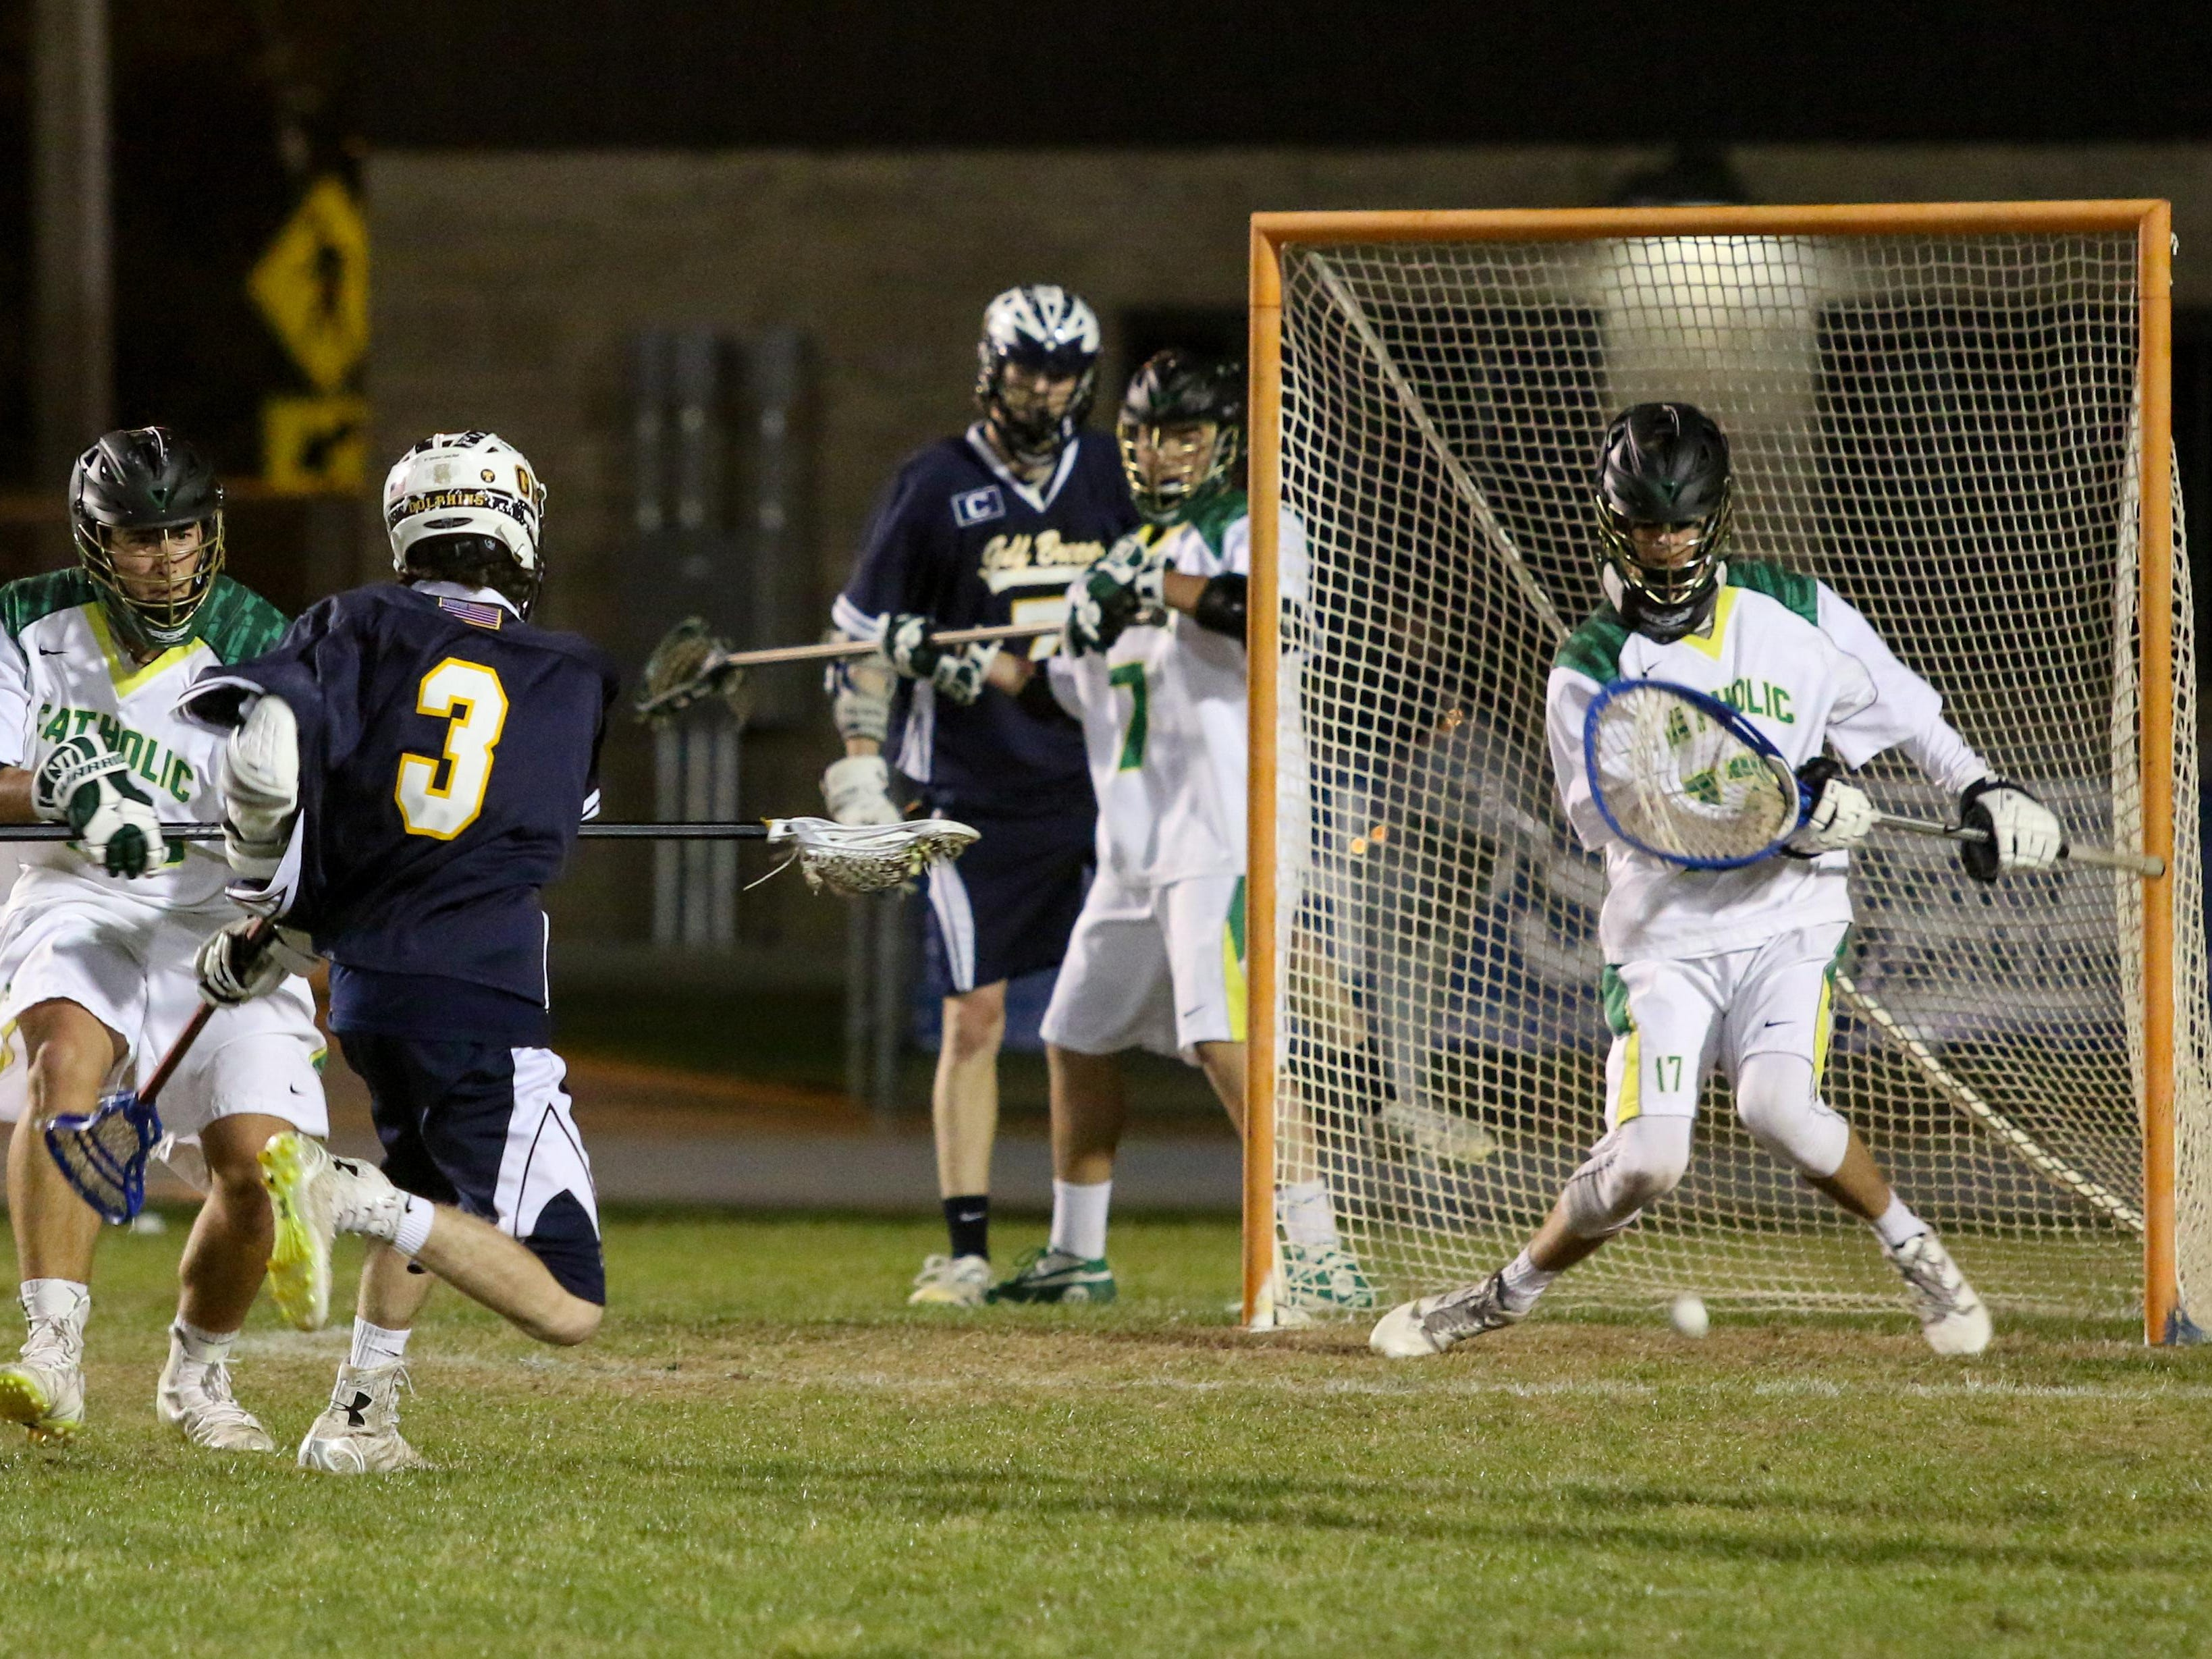 Gulf Breeze's Nick Frazier (3) gets the ball past Catholic's Jack Bartkowski for a goal Friday night during the District 1-1A boys lacrosse championship game at Gulf Breeze High School.